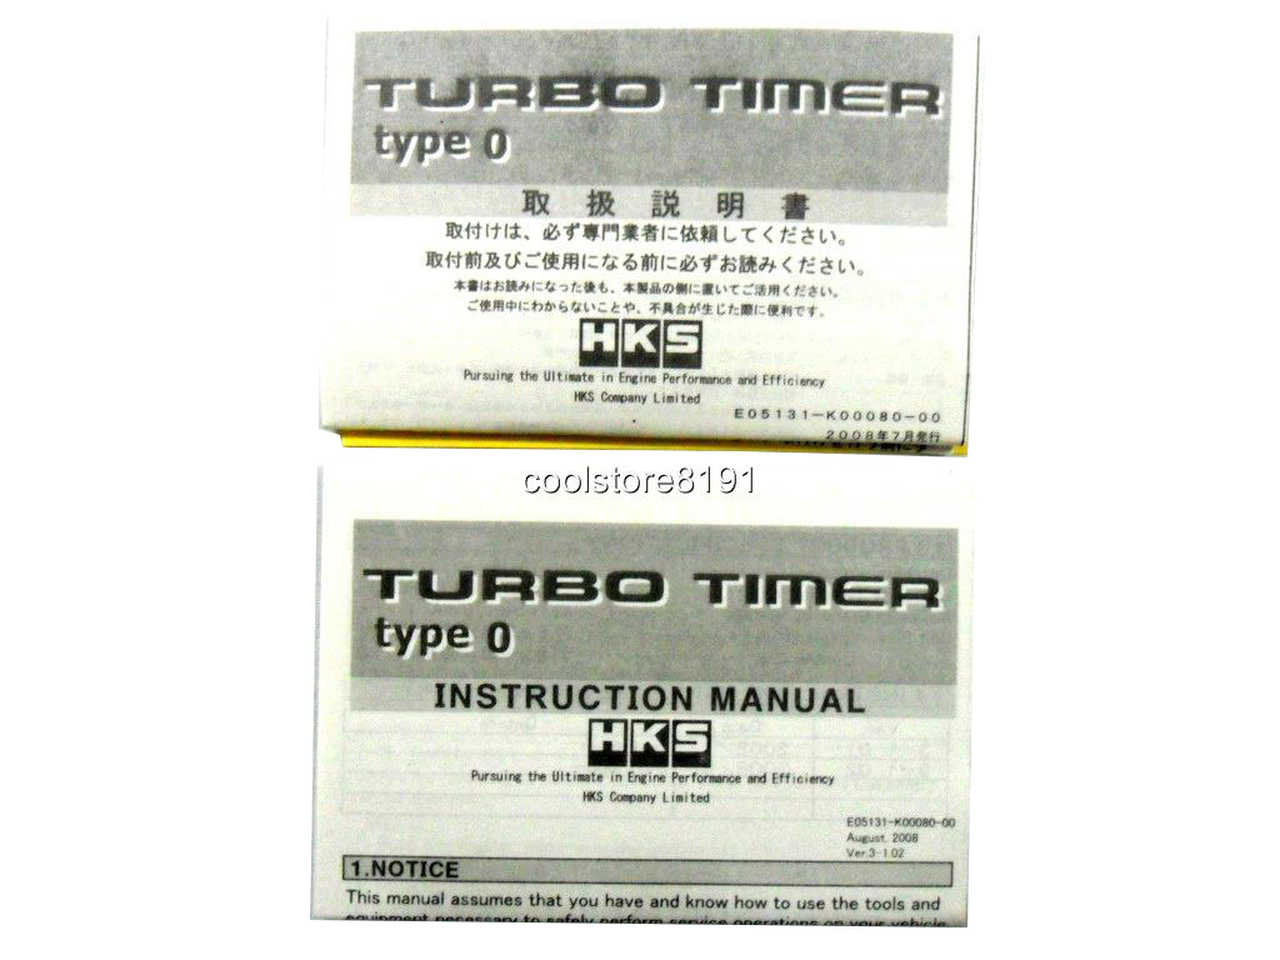 apexi turbo timer user manual